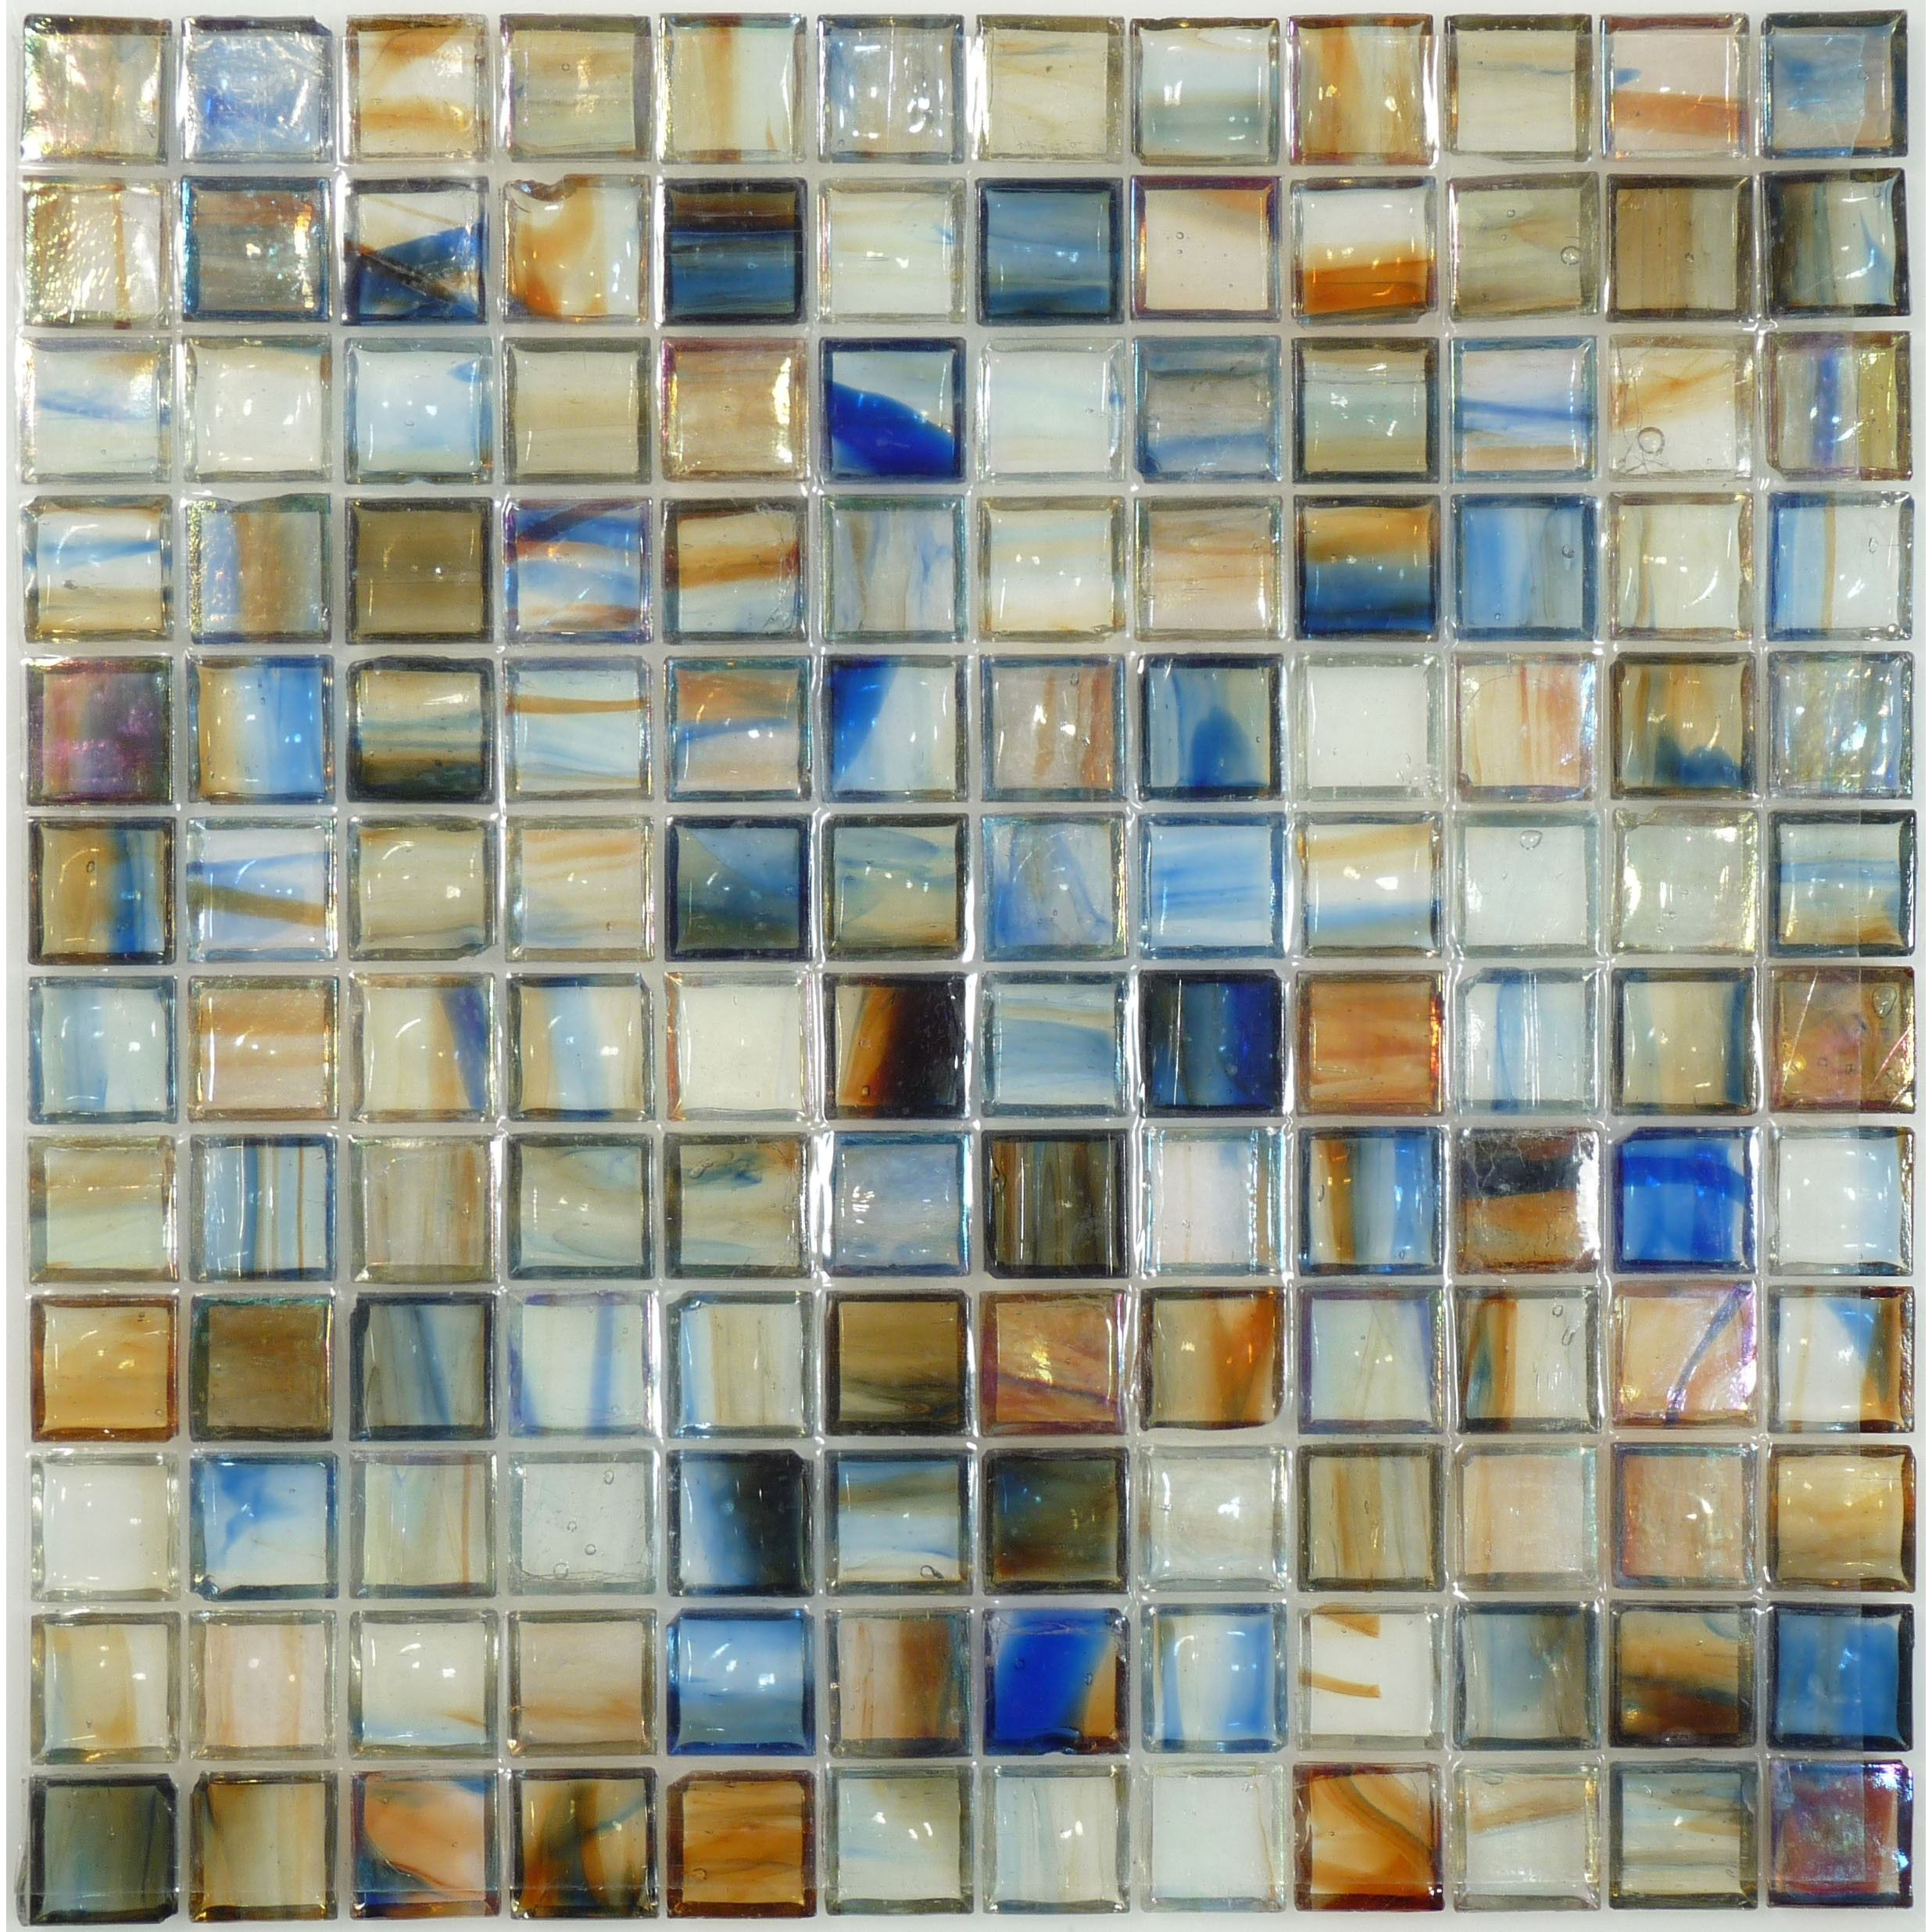 Hirsch 1 X 1 Blue Glass Square Tile Glossy Iridescent Ji1240 Iridescent Glass Tiles Iridescent Tile Glass Tile